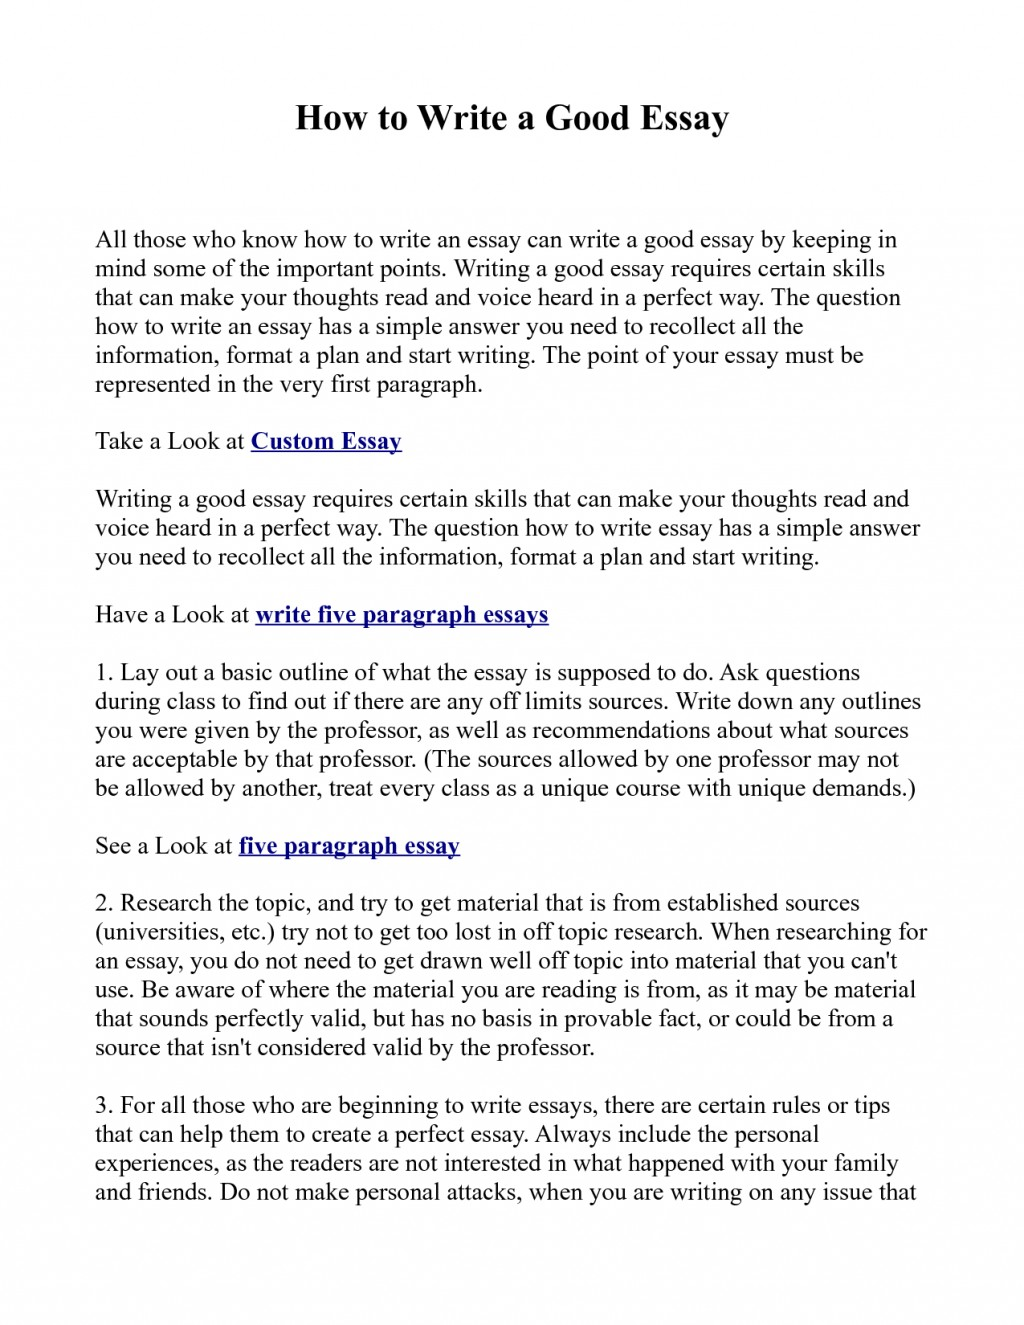 010 How To Write Essay Ex1id5s6cl Awful Ab An In 3 Hours Introduction Body And Conclusion 2 Large